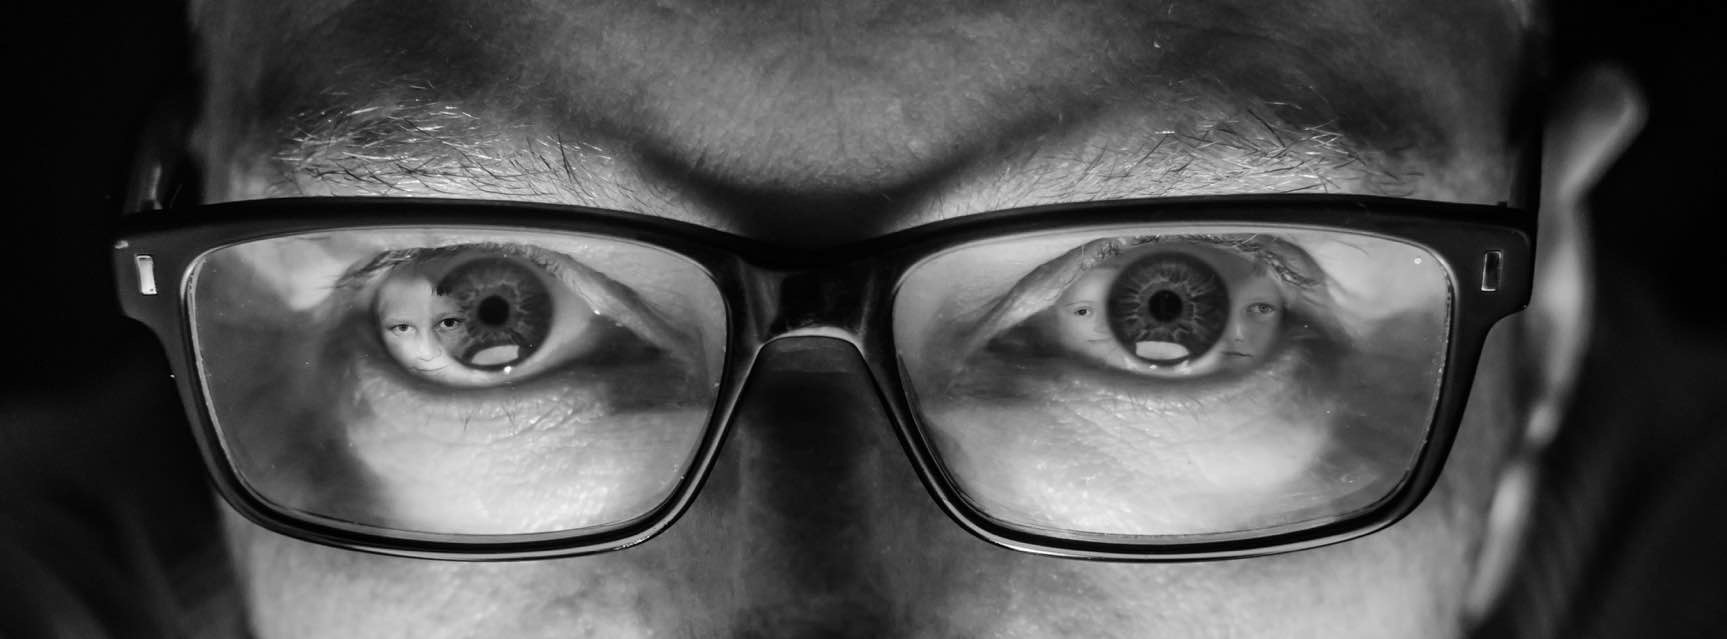 look into my eyes by Richie squires